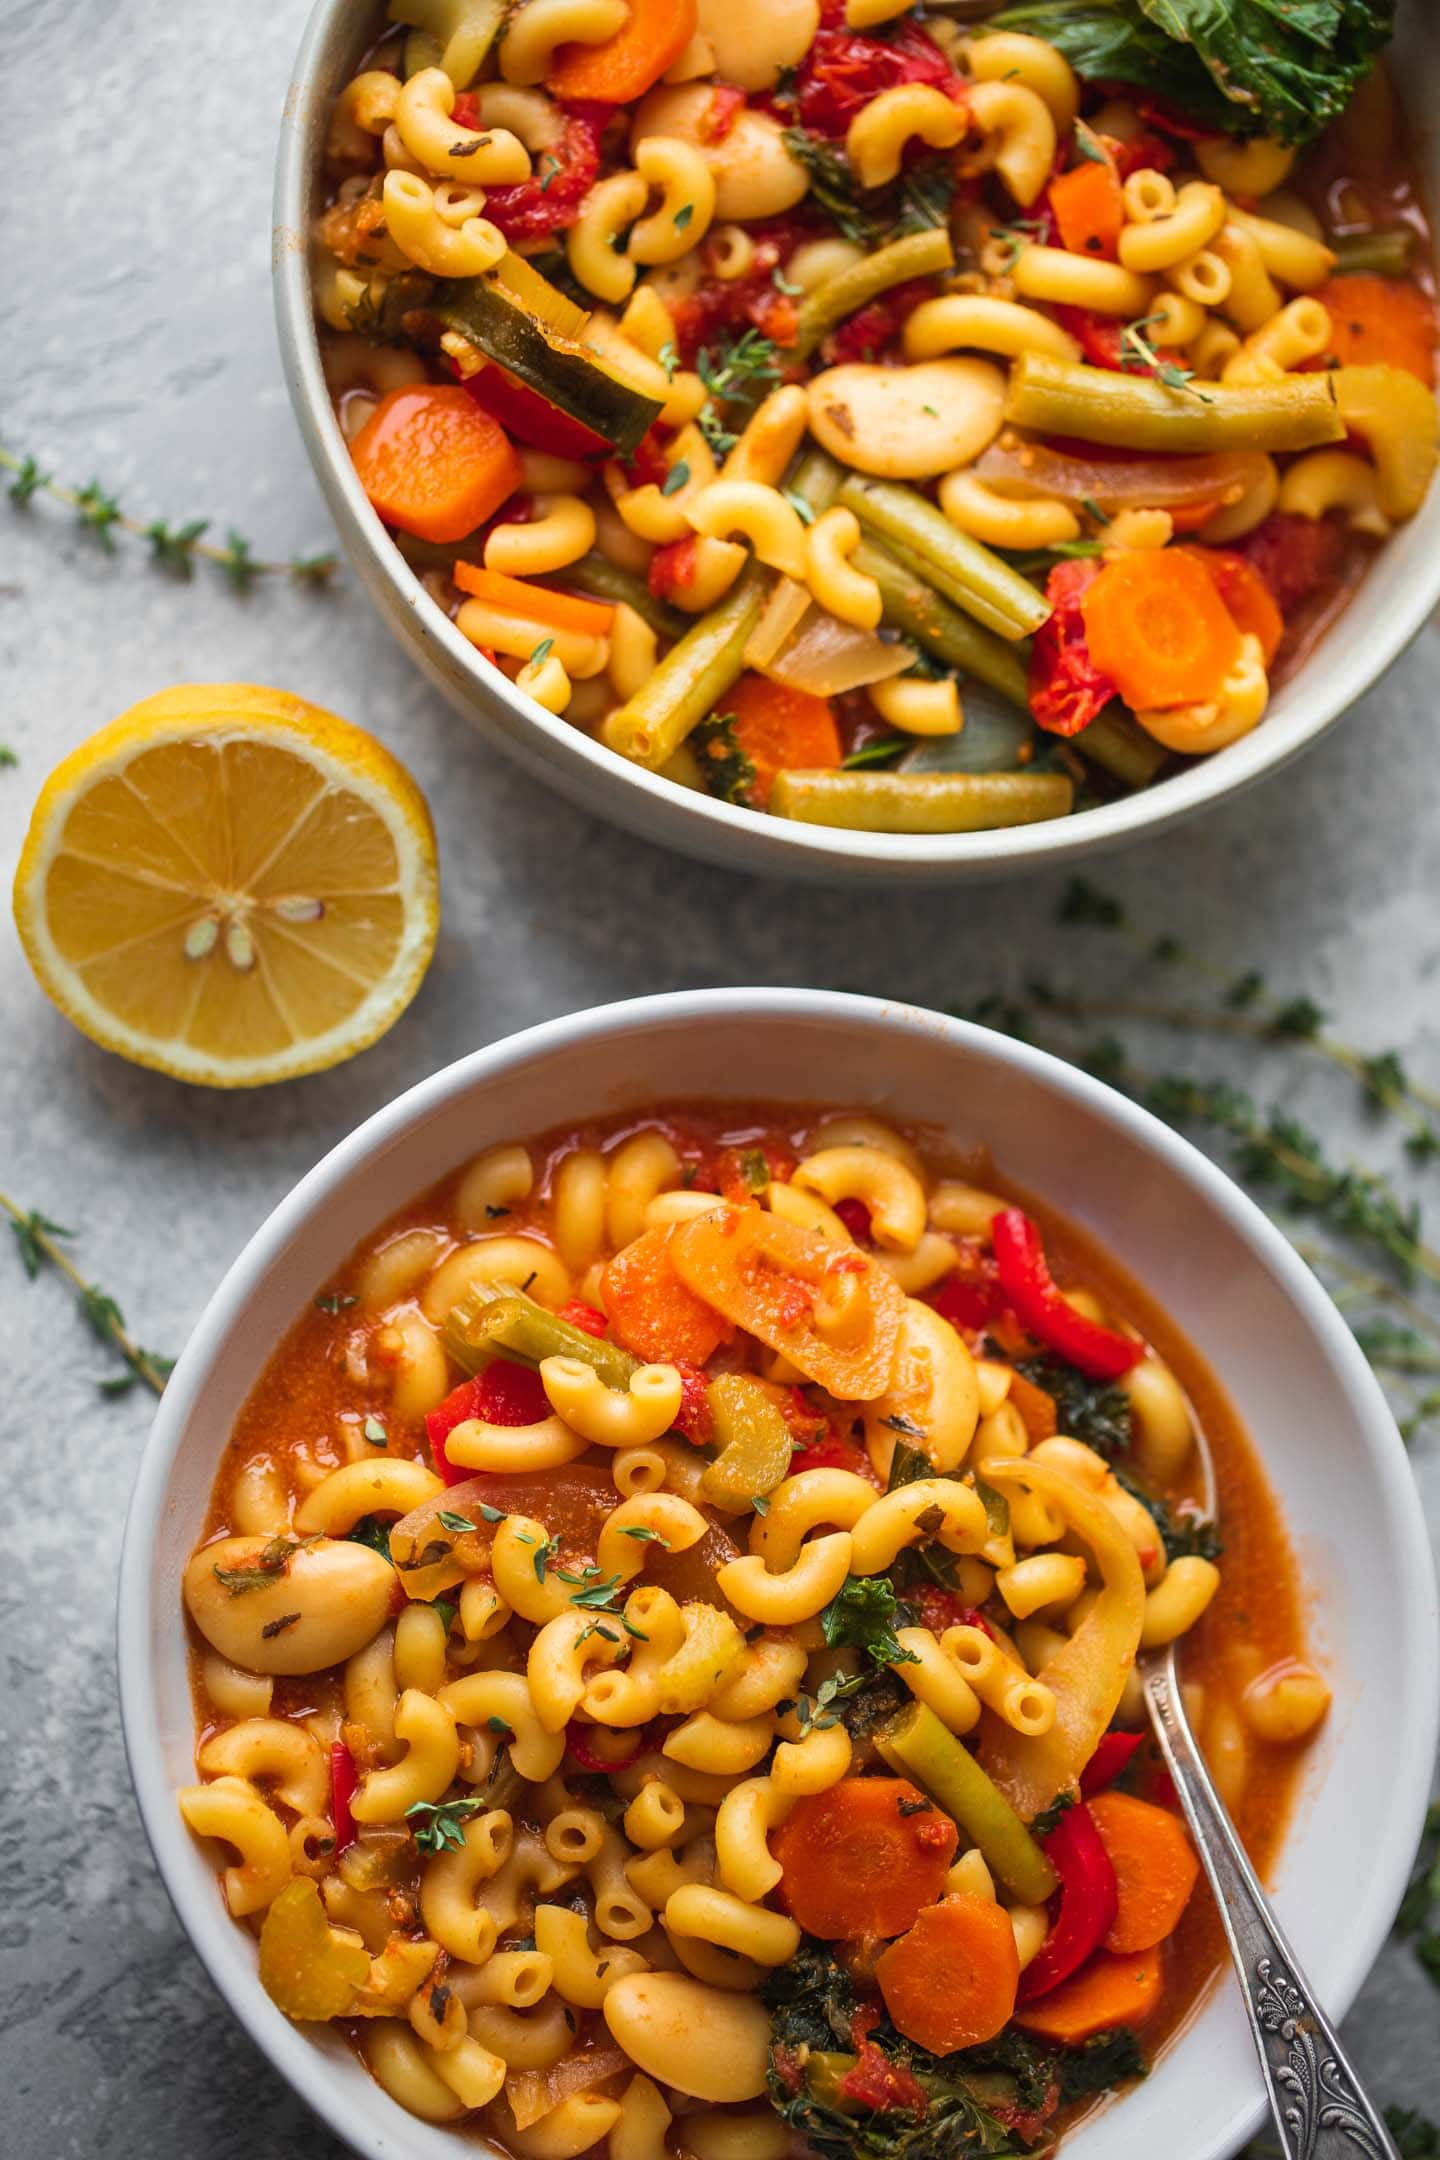 Two bowls of minestrone soup with beans and pasta